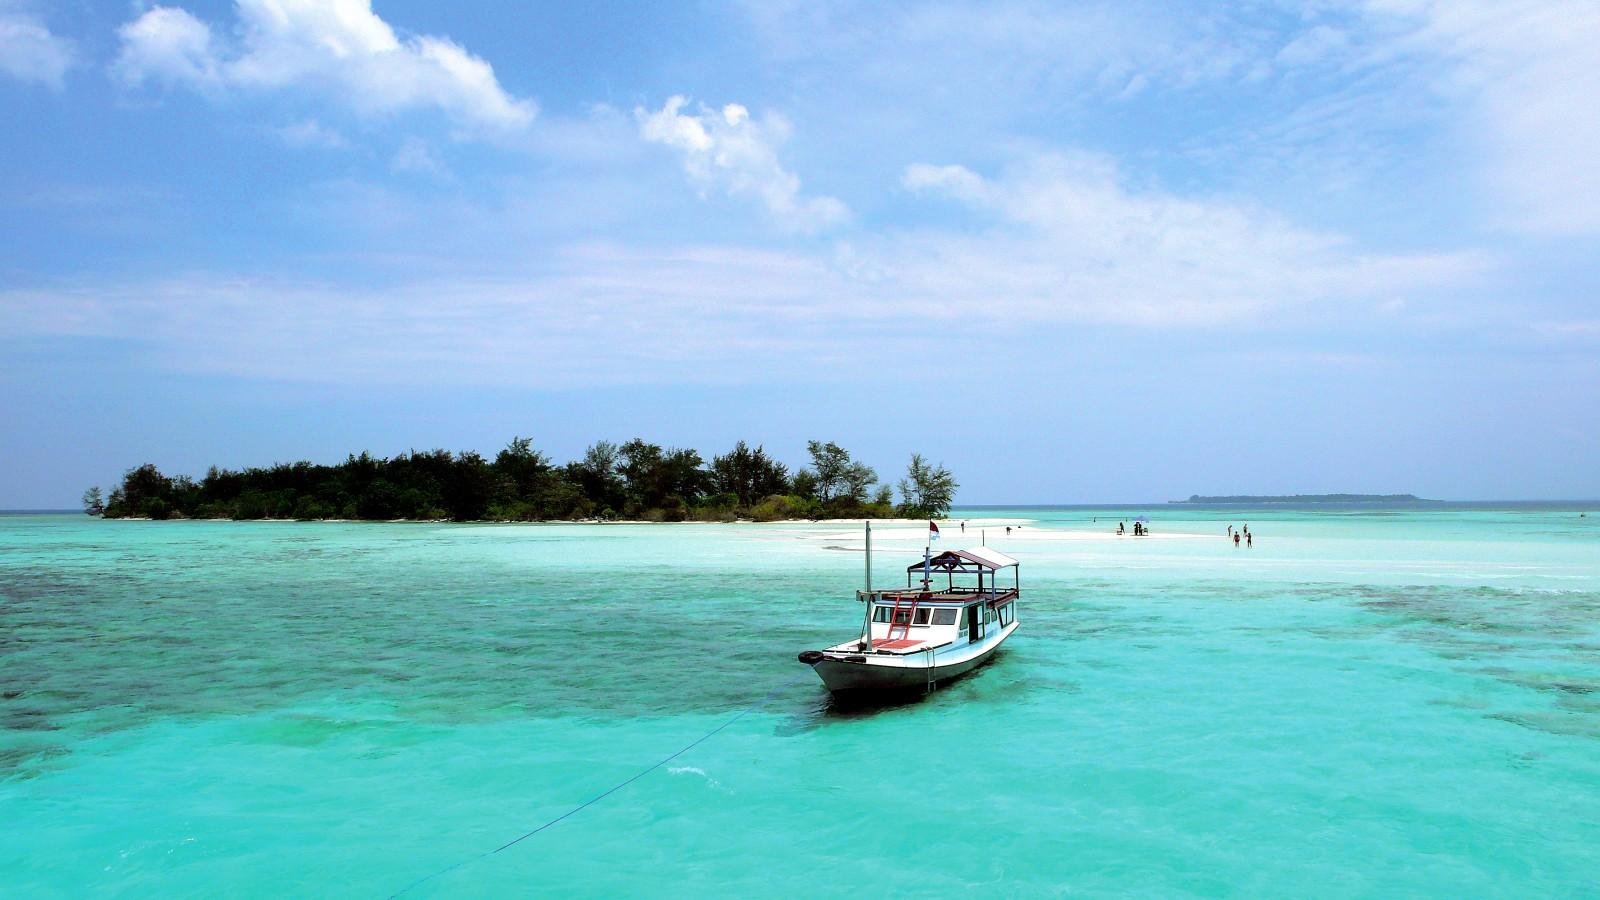 One of the many smaill islands around Kura Kura Resort, Indonesia